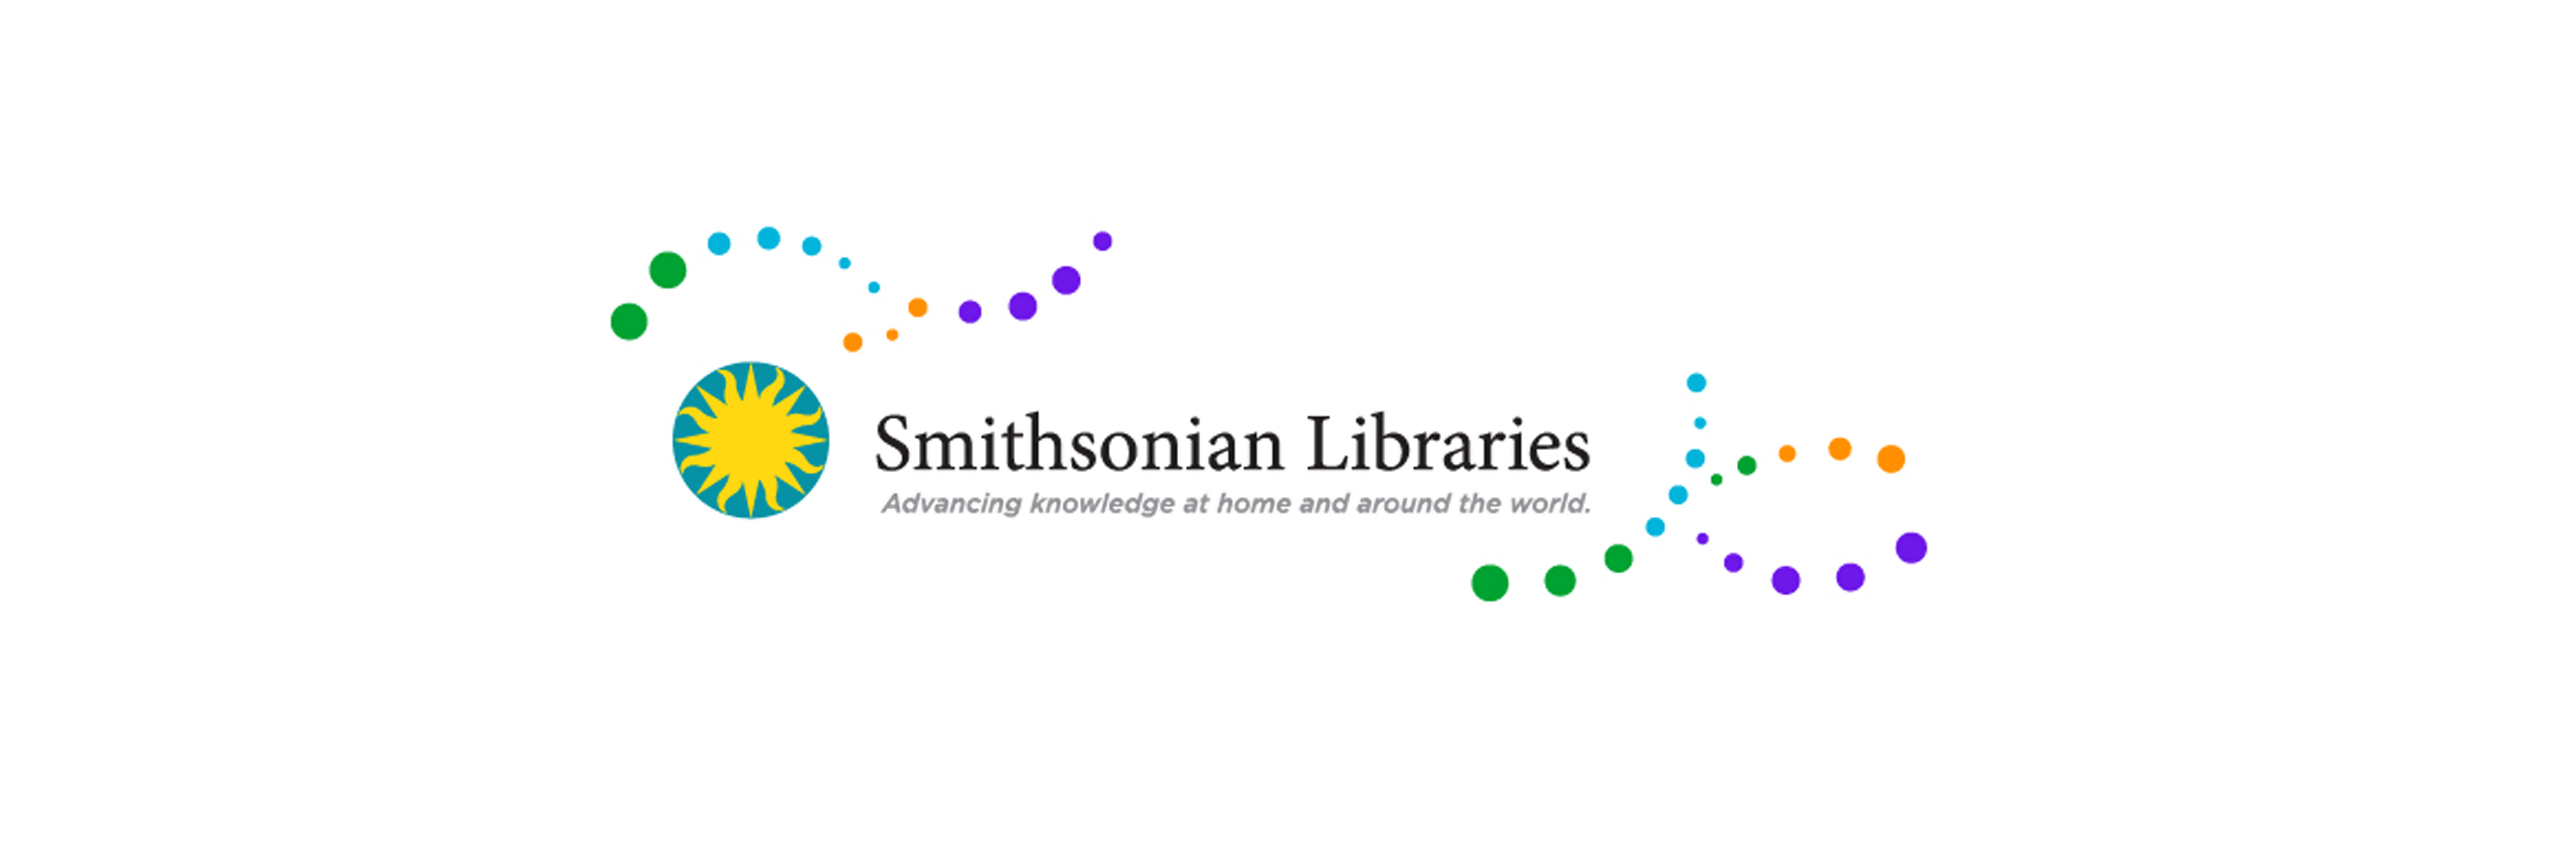 Smithsonian Libraries